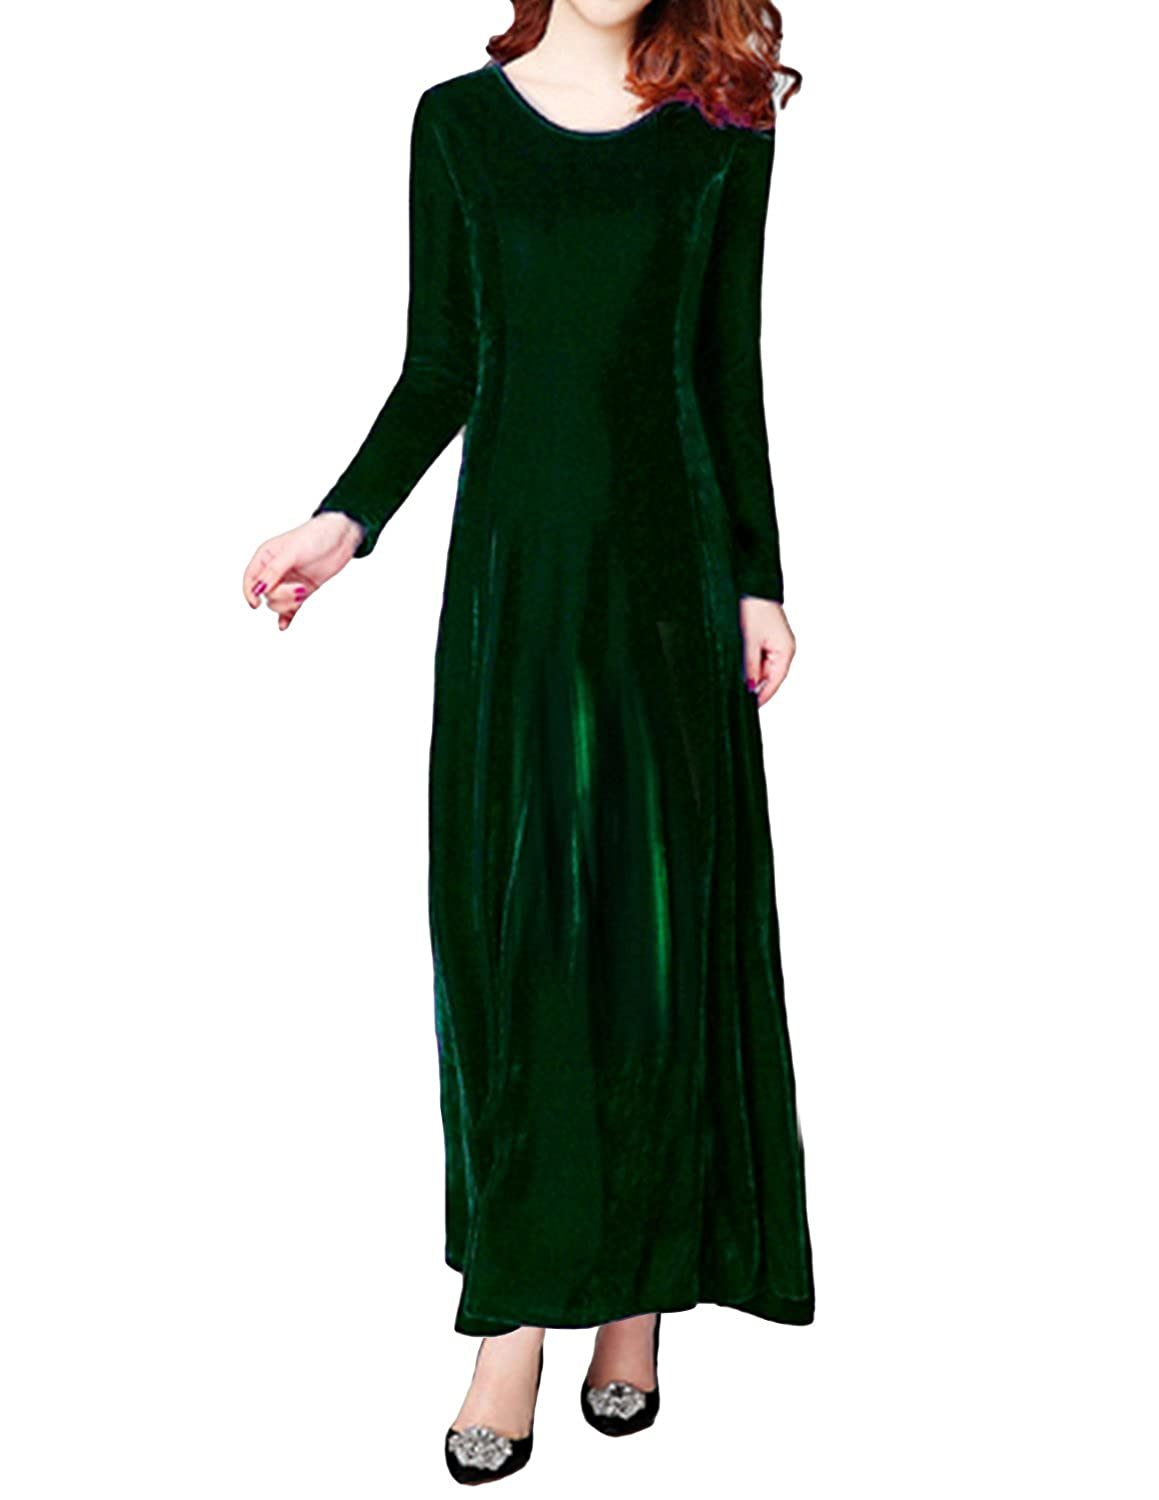 e68b2ec48 Sue&Joe Women's Maxi Dress Long Sleeve Velvet Long Elegant Stretchy Eveing  Gown at Amazon Women's Clothing store: